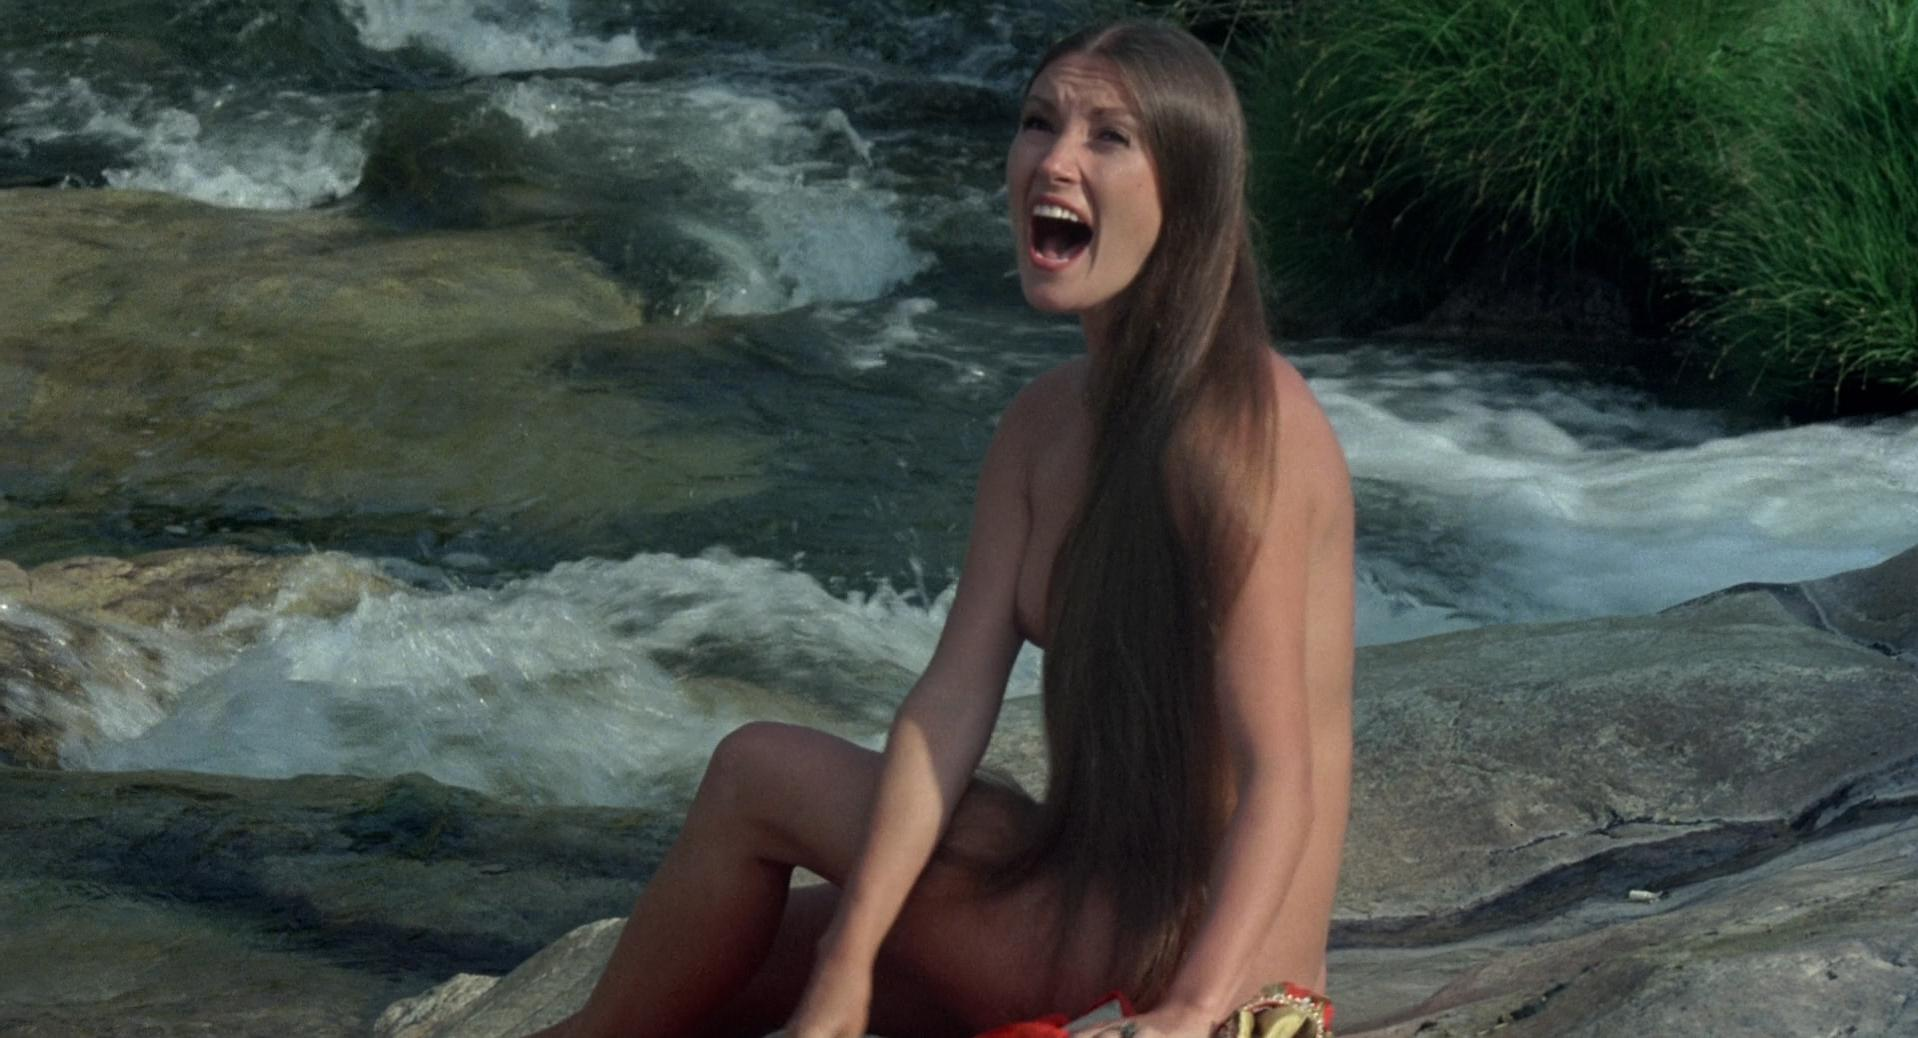 Jane Seymour nude, Taryn Power nude - Sinbad and the Eye of the Tiger (1977)